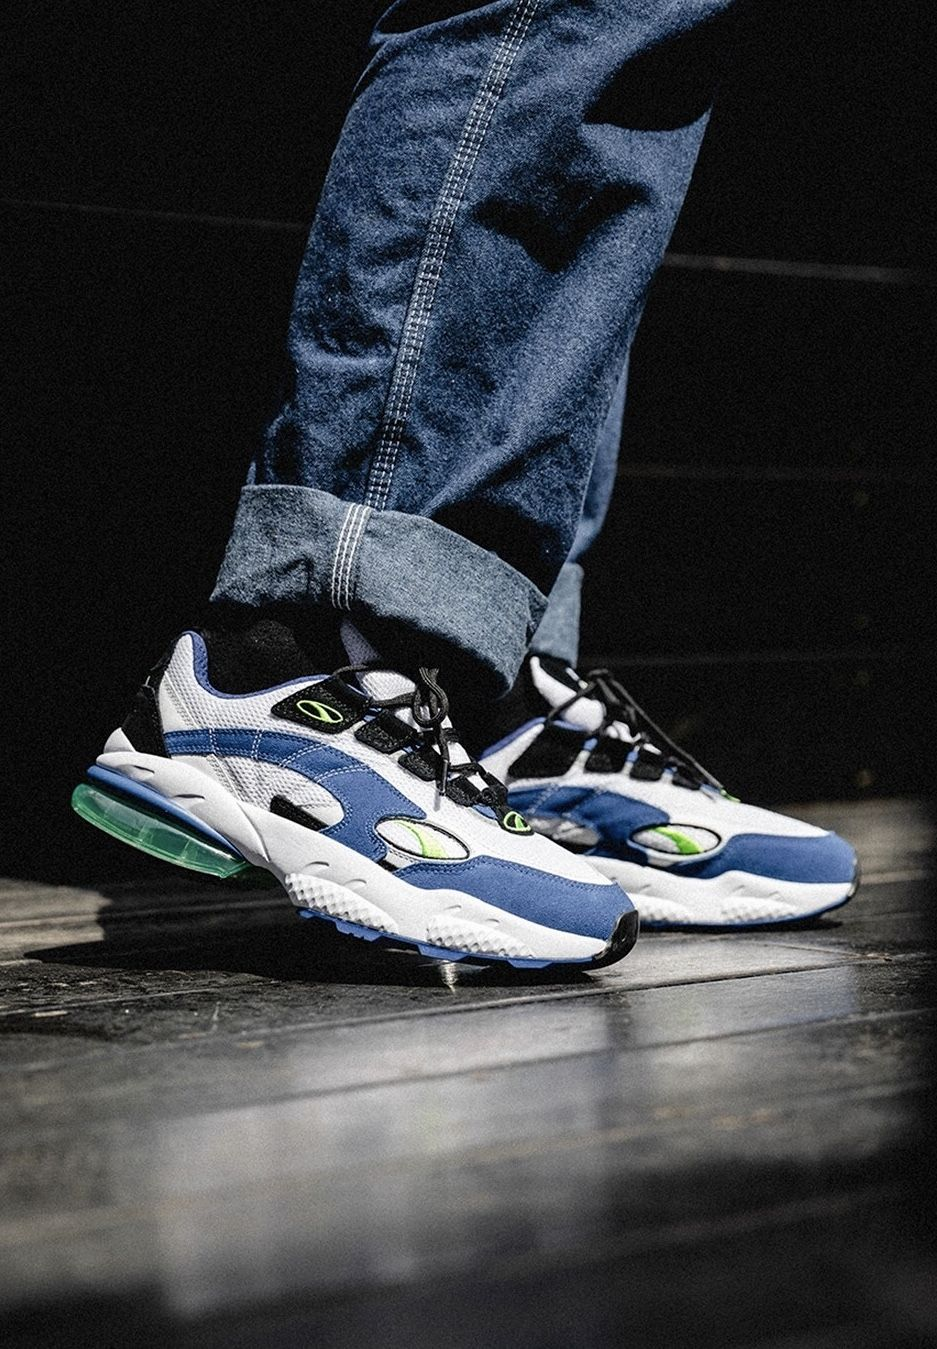 91602c8d9 Puma Cell Venom | Sneakers: Puma Cell | Sneakers, Shoes og Fashion